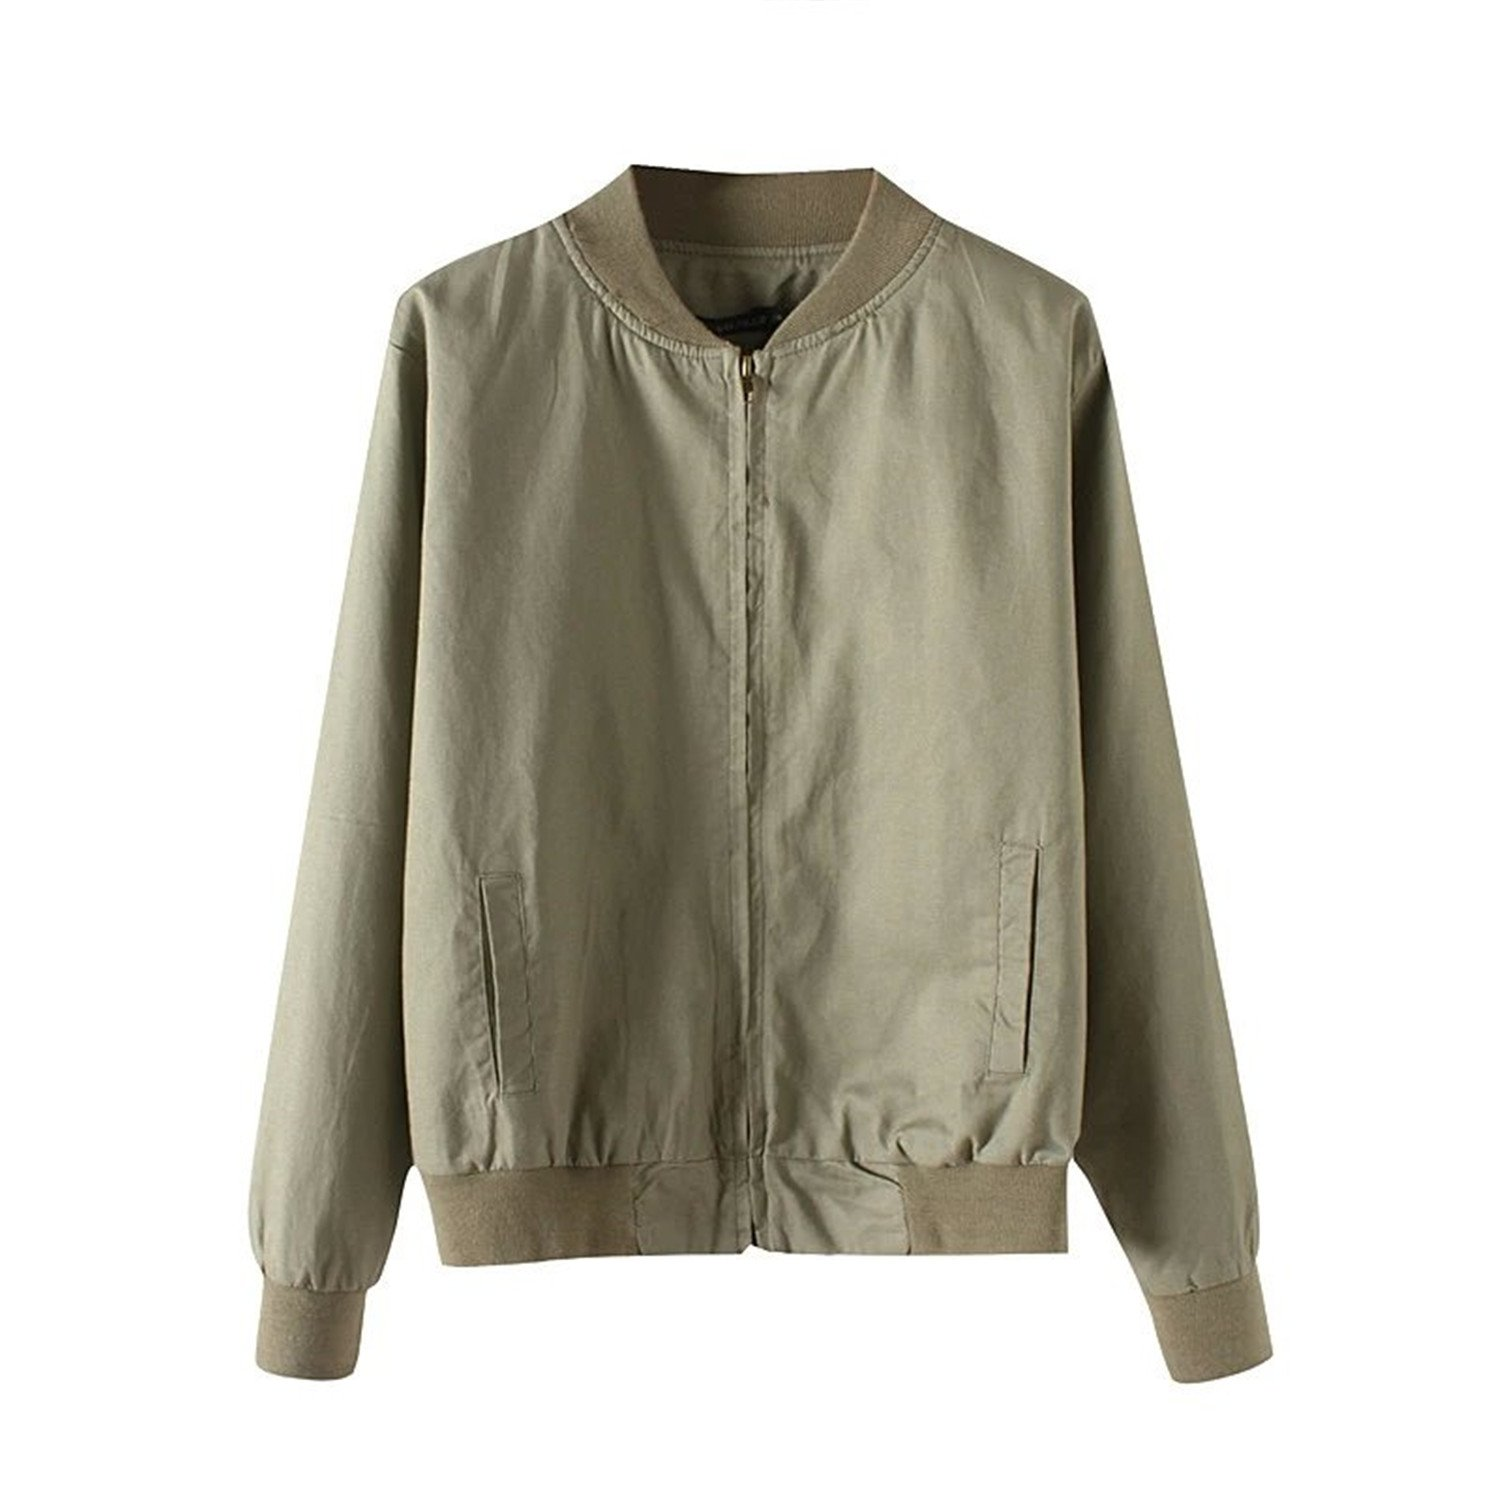 Amazon.com: Dormery Coat Autumn Flight Army Green Women ...